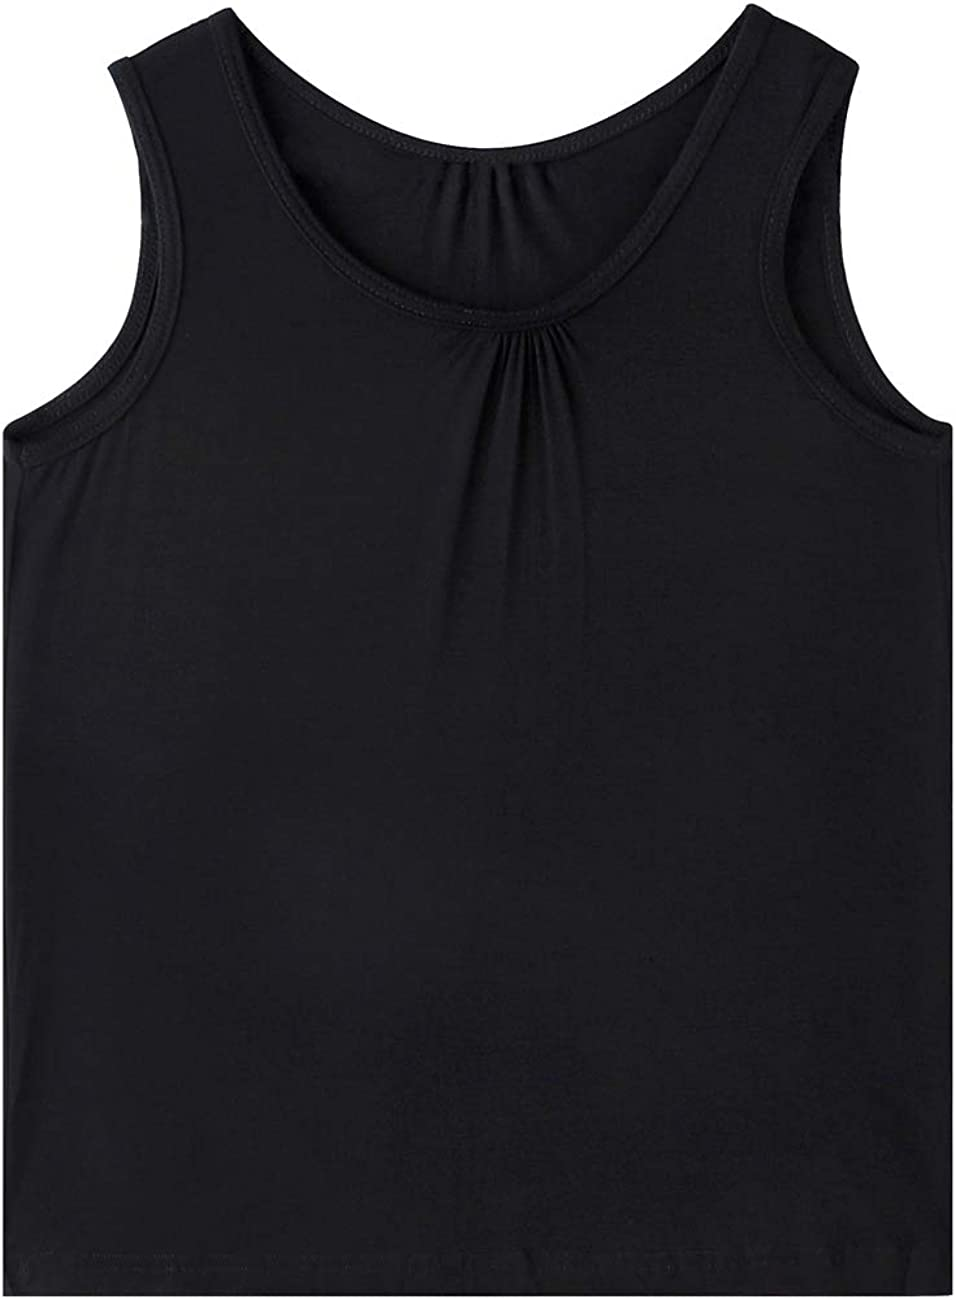 Frlozs Plus Size Tank Tops for Women Cami Casual Loose Fitting Tunic Not Bloated Flowy